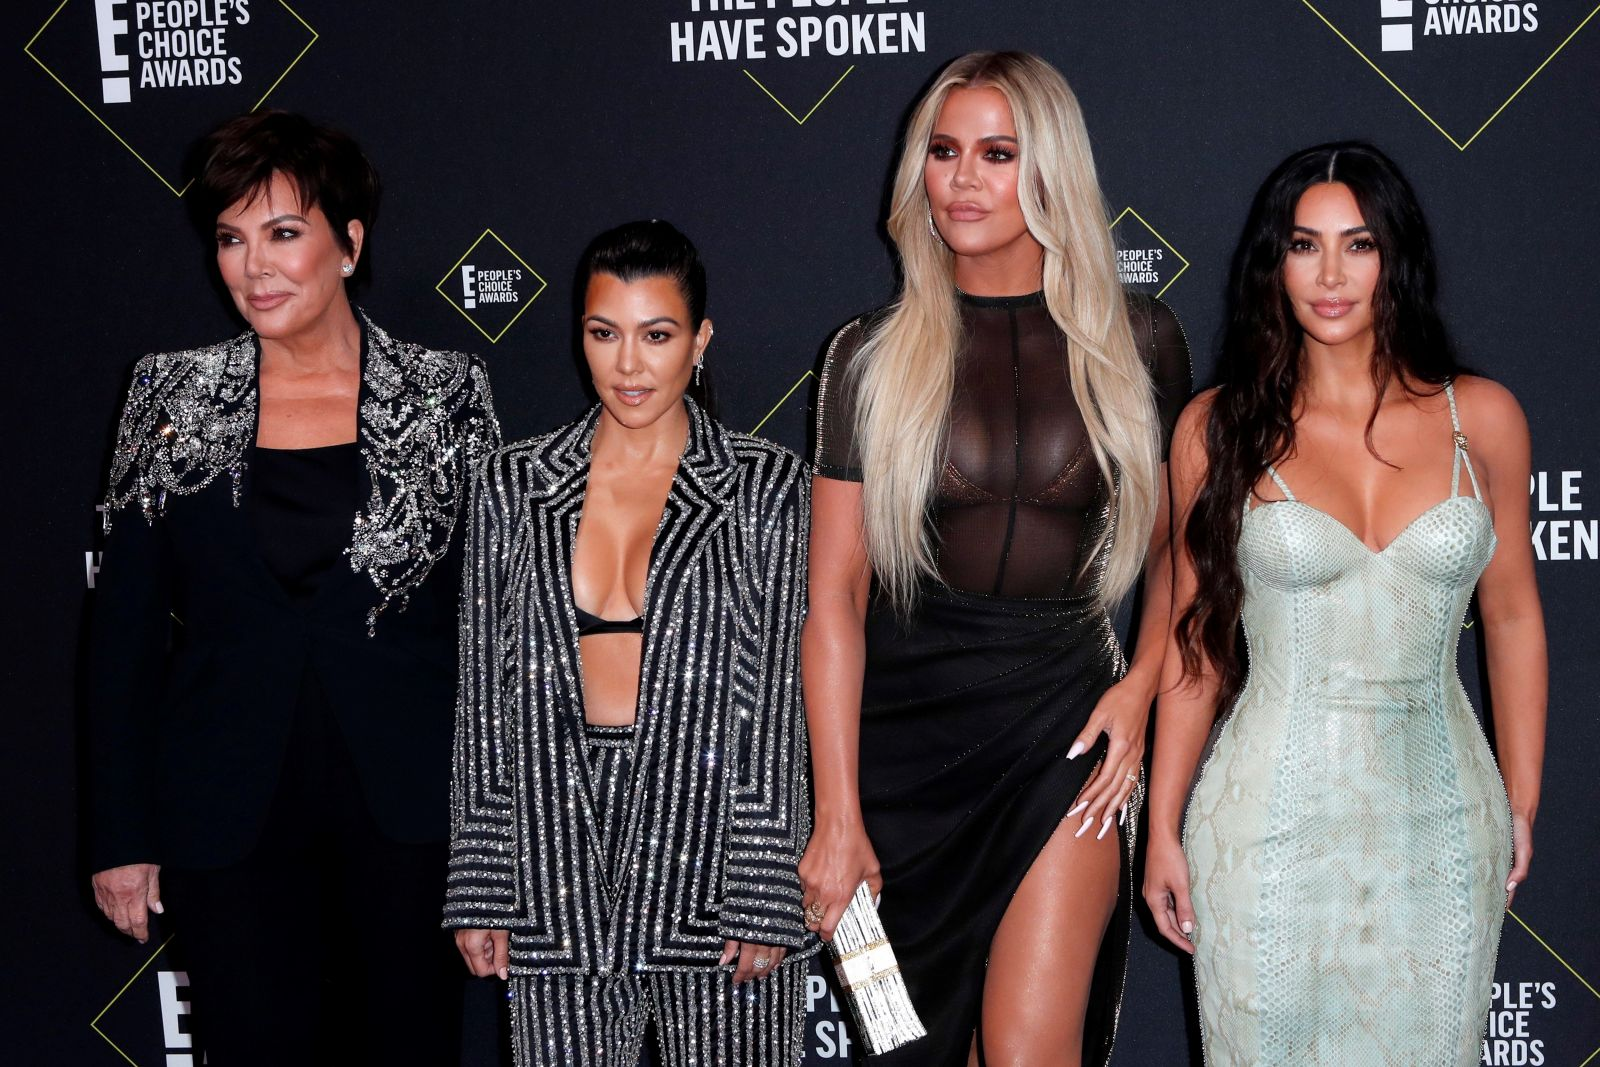 clan Kardashian, People's Choice Awards, Khloé Kardashian